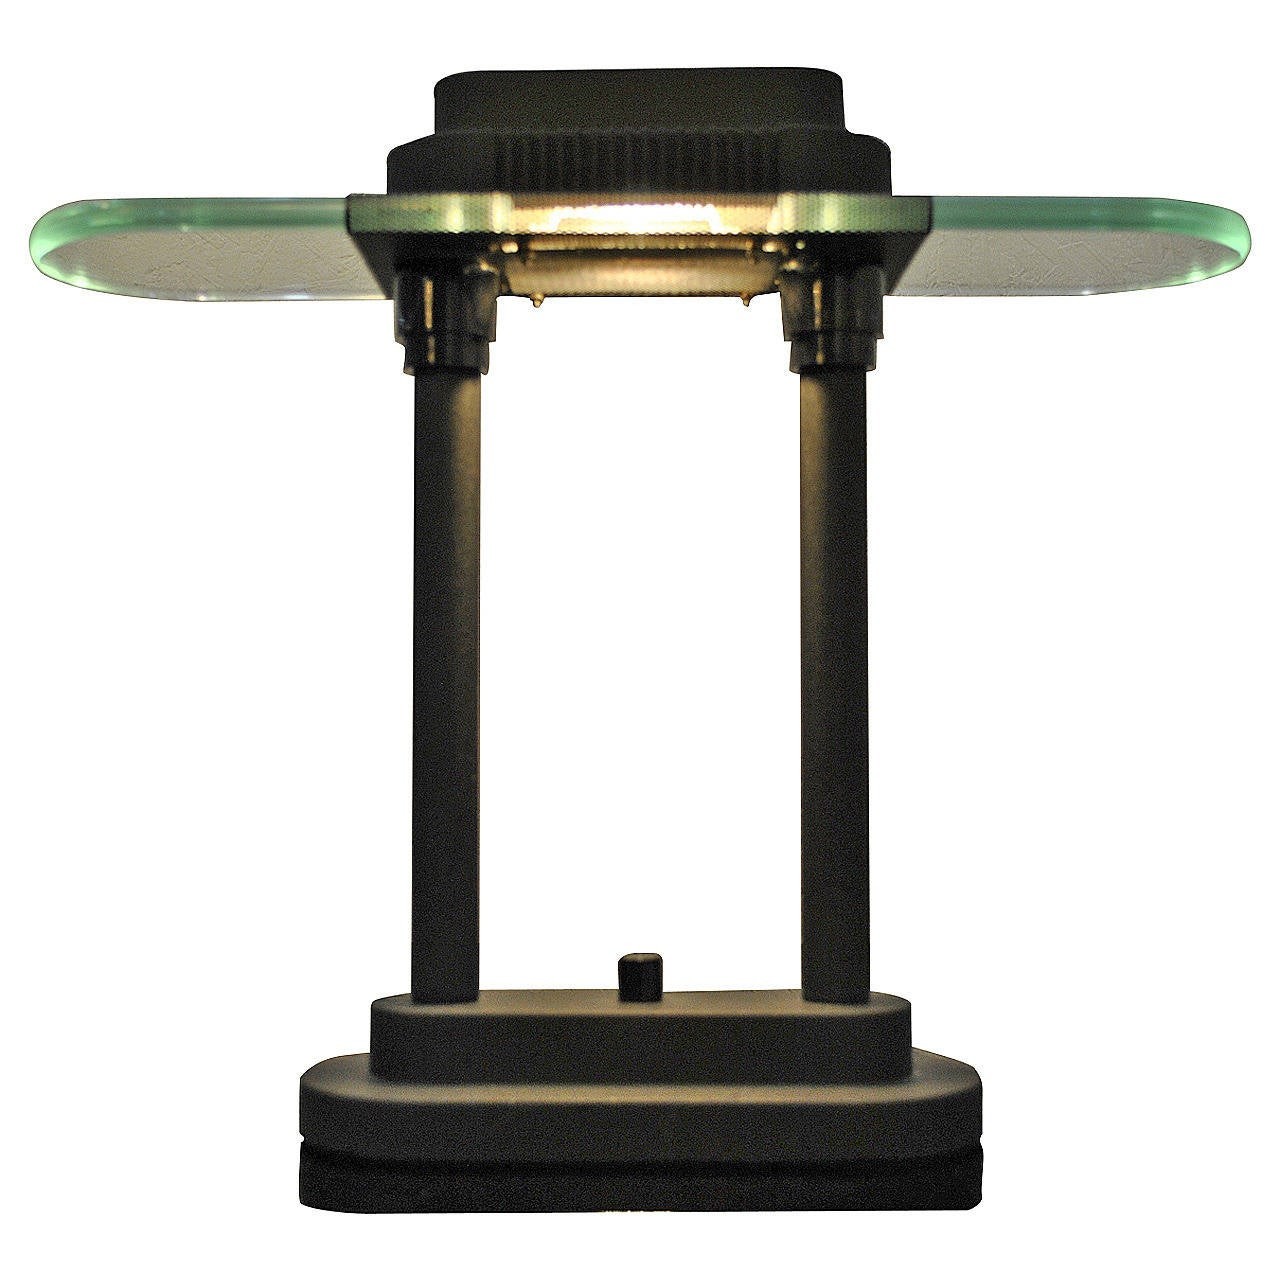 Nice Modernist Desk Lamp By Robert Sonneman At 1stdibs